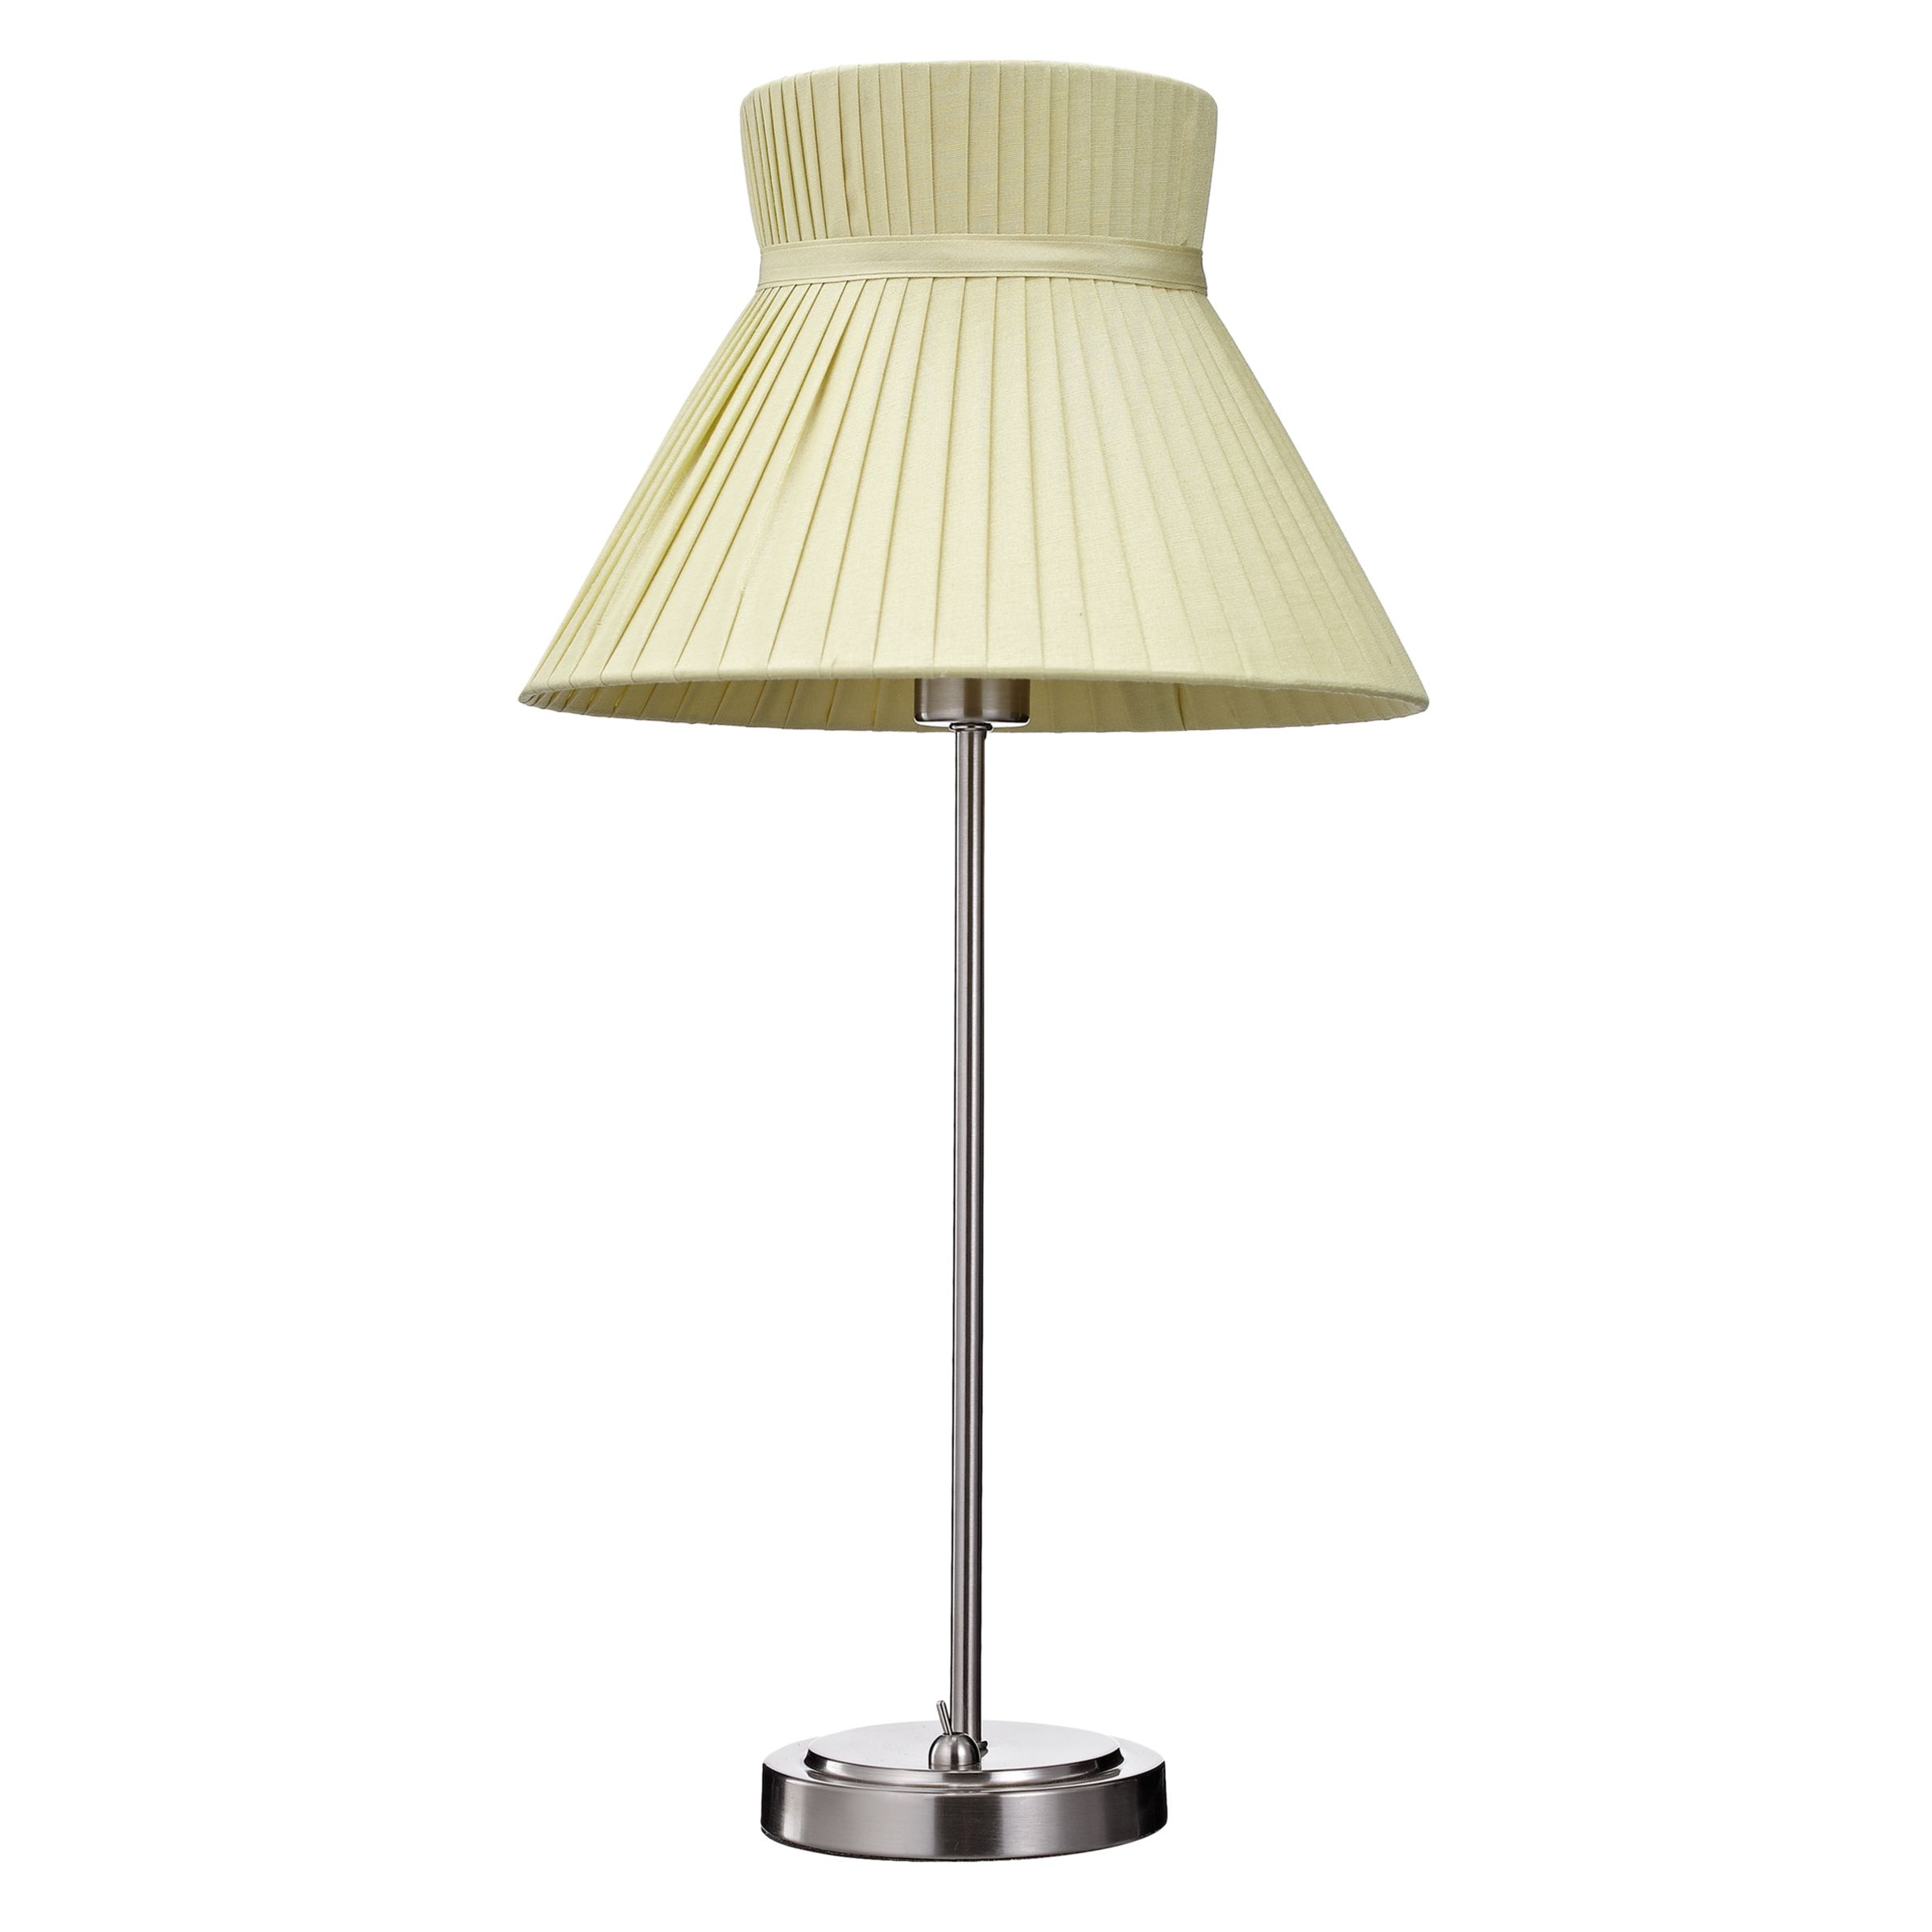 John lewis table lamps reviews for Table lamp shades john lewis